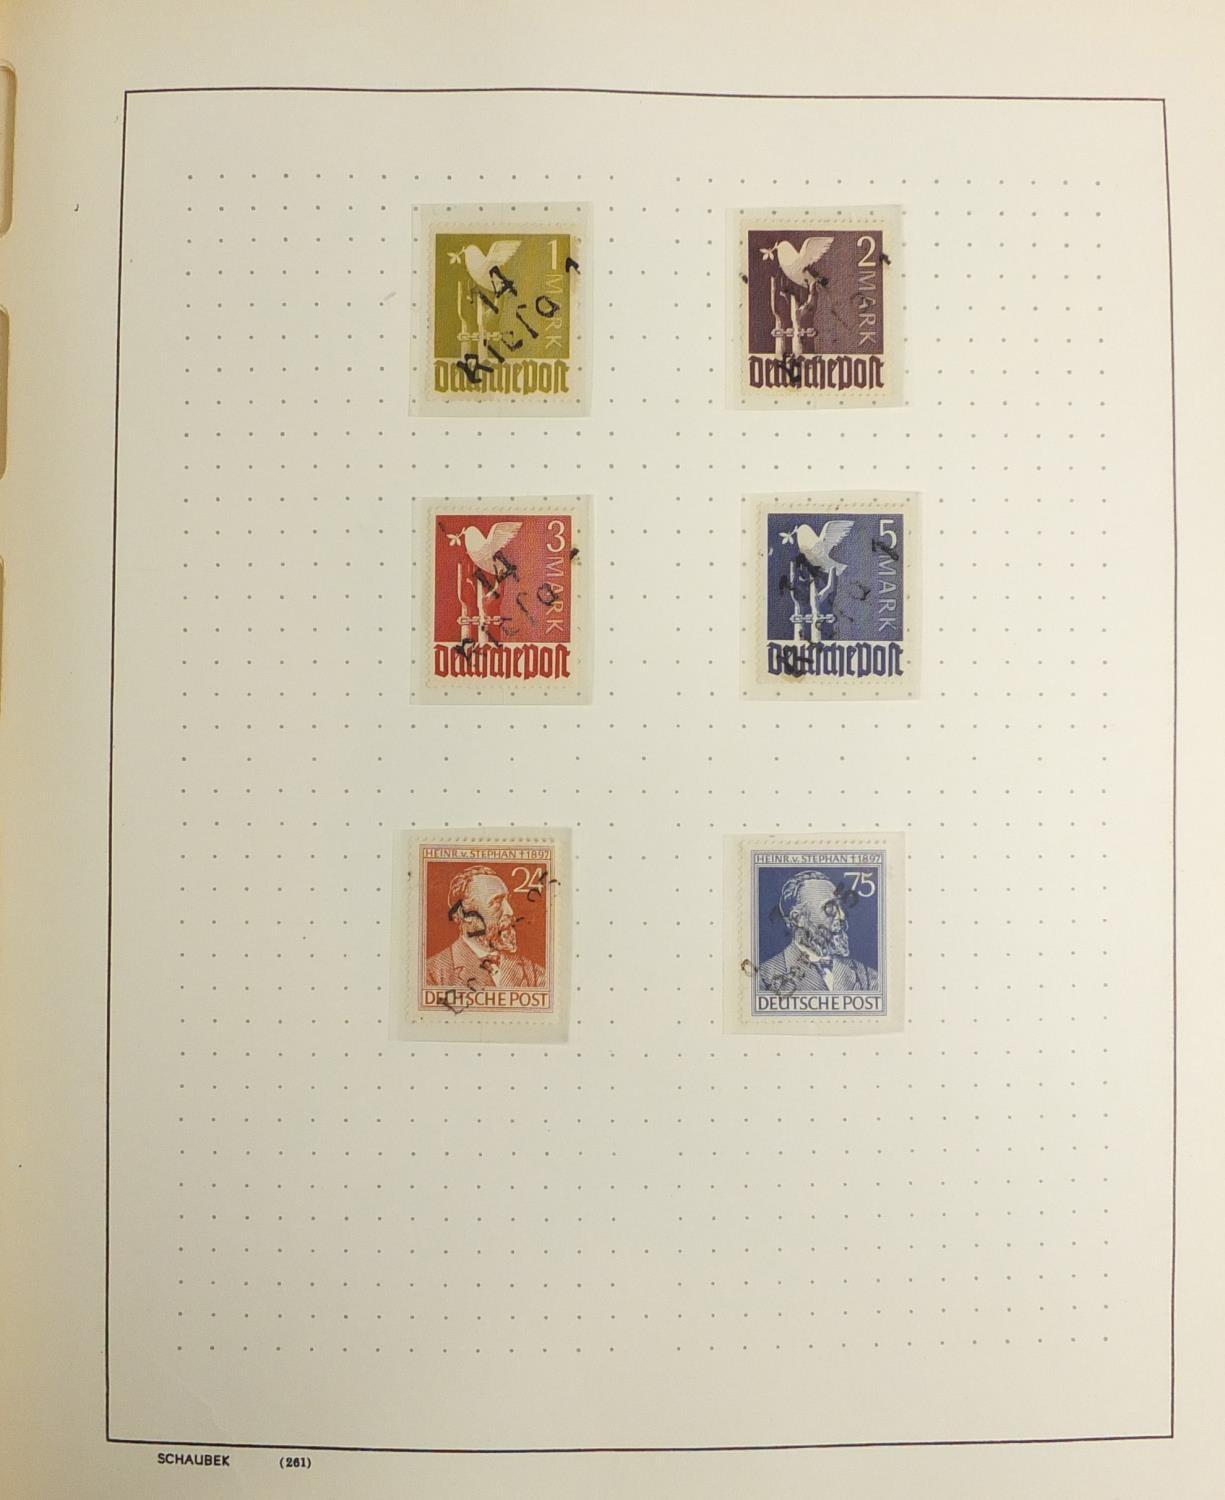 Lot 1046 - Mid 20th century German stamps arranged in an album : For Further Condition Reports Please visit our